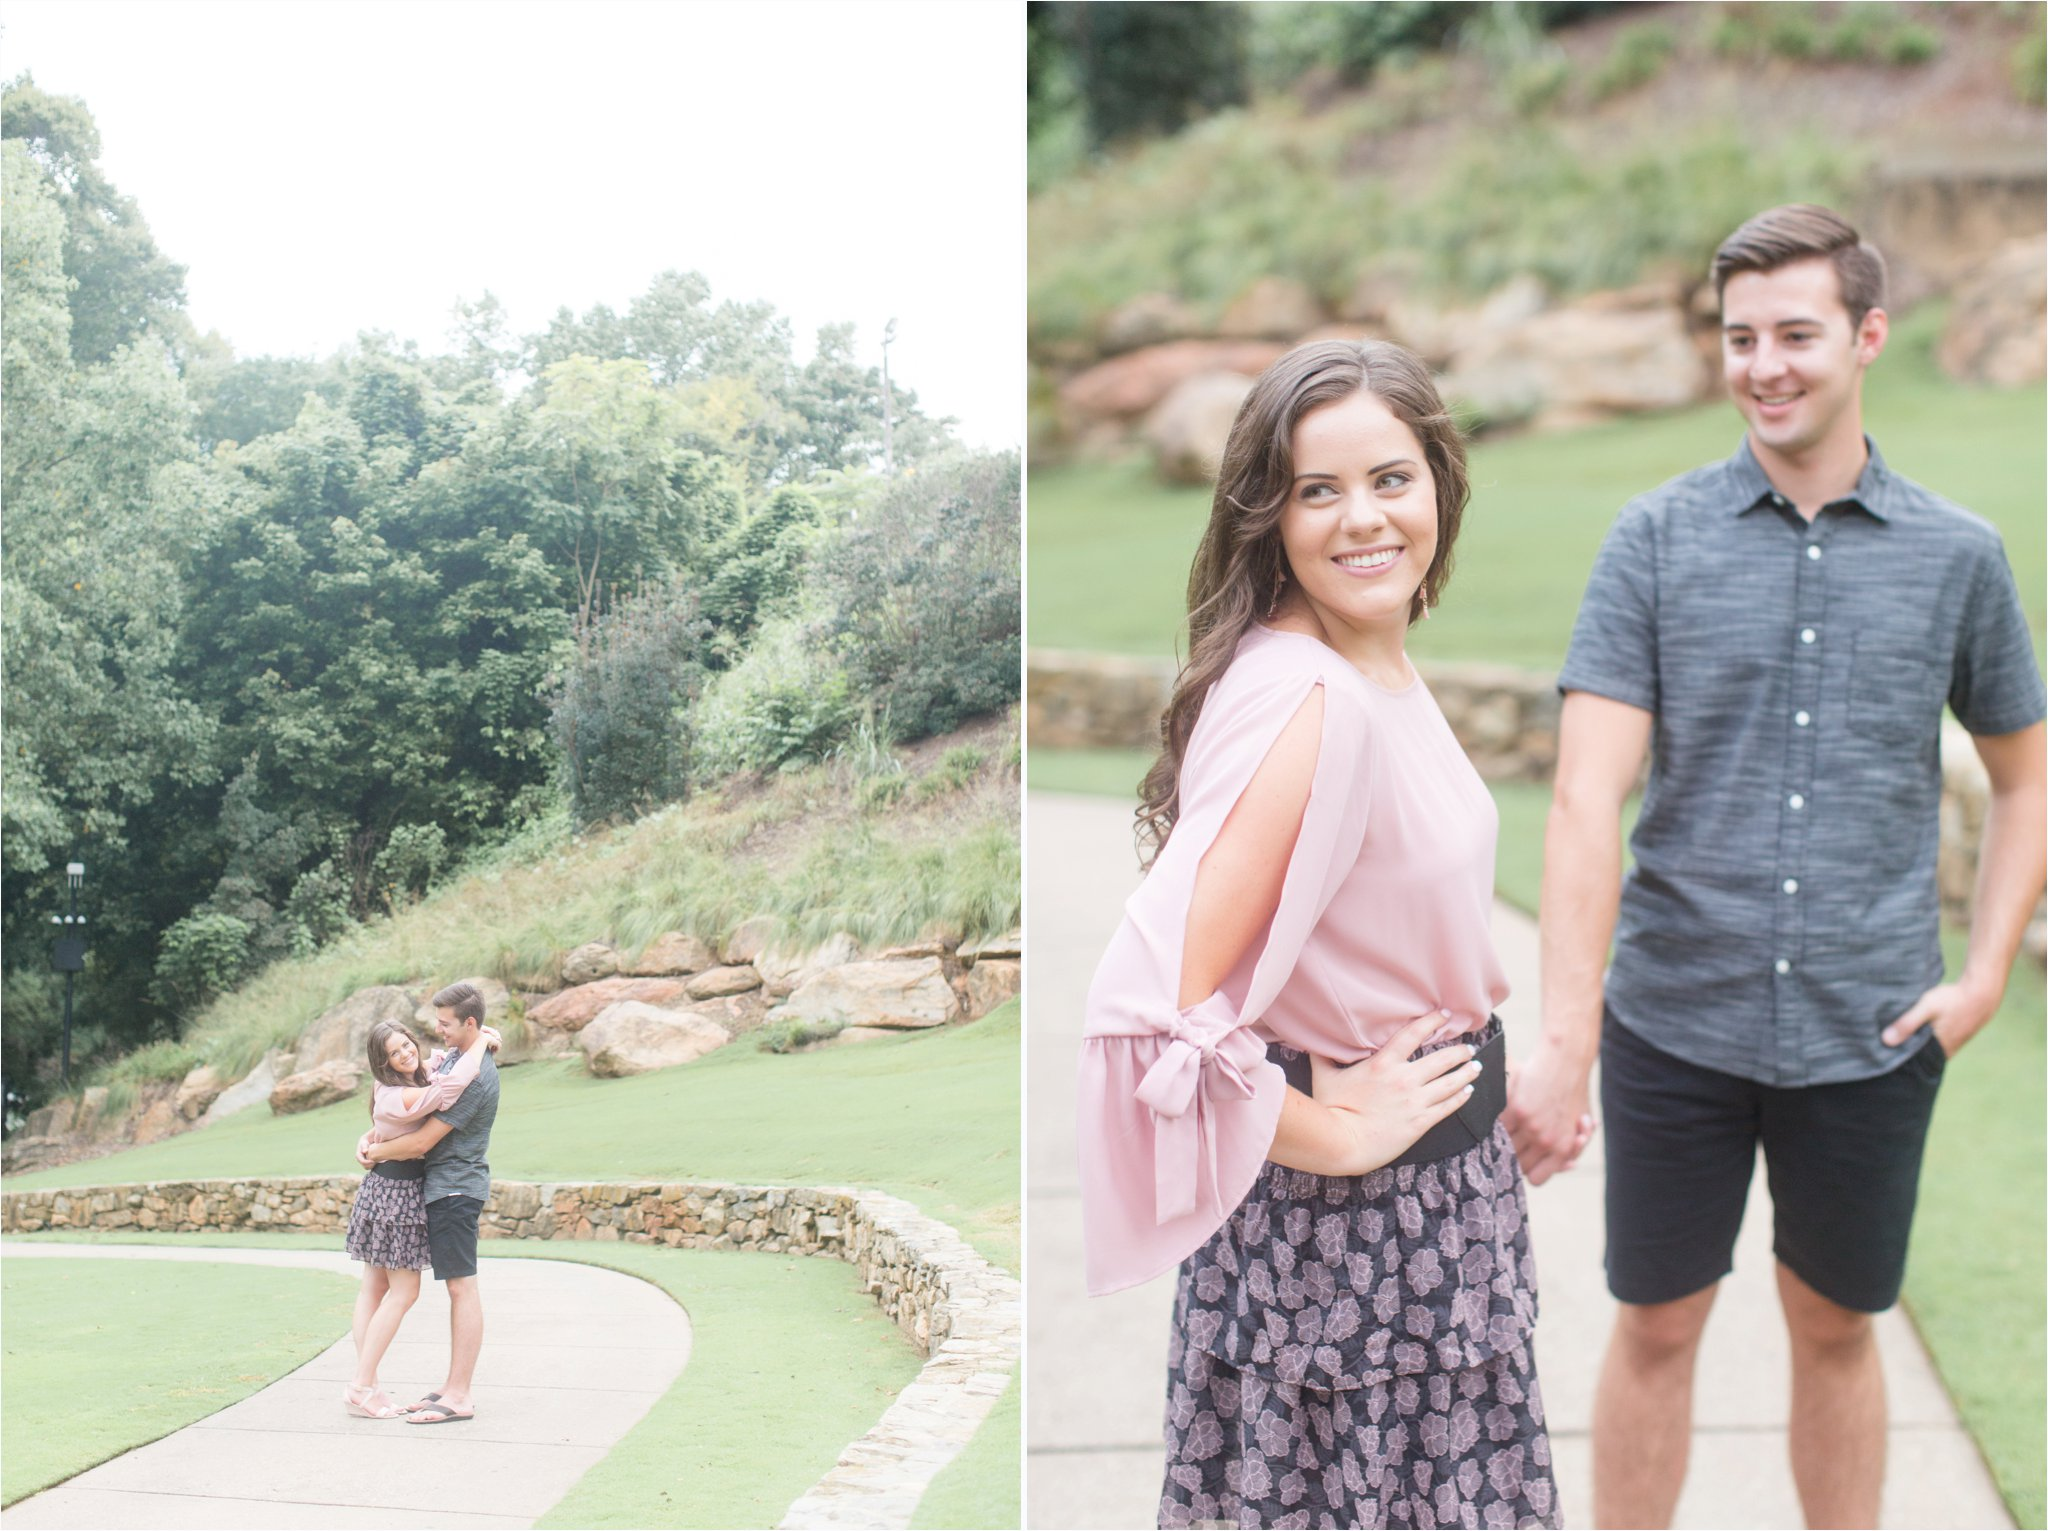 Downtown Greenville Engagement Session | Falls Park Greenville SC | South Carolina Wedding Photography | Christa Rene Photography